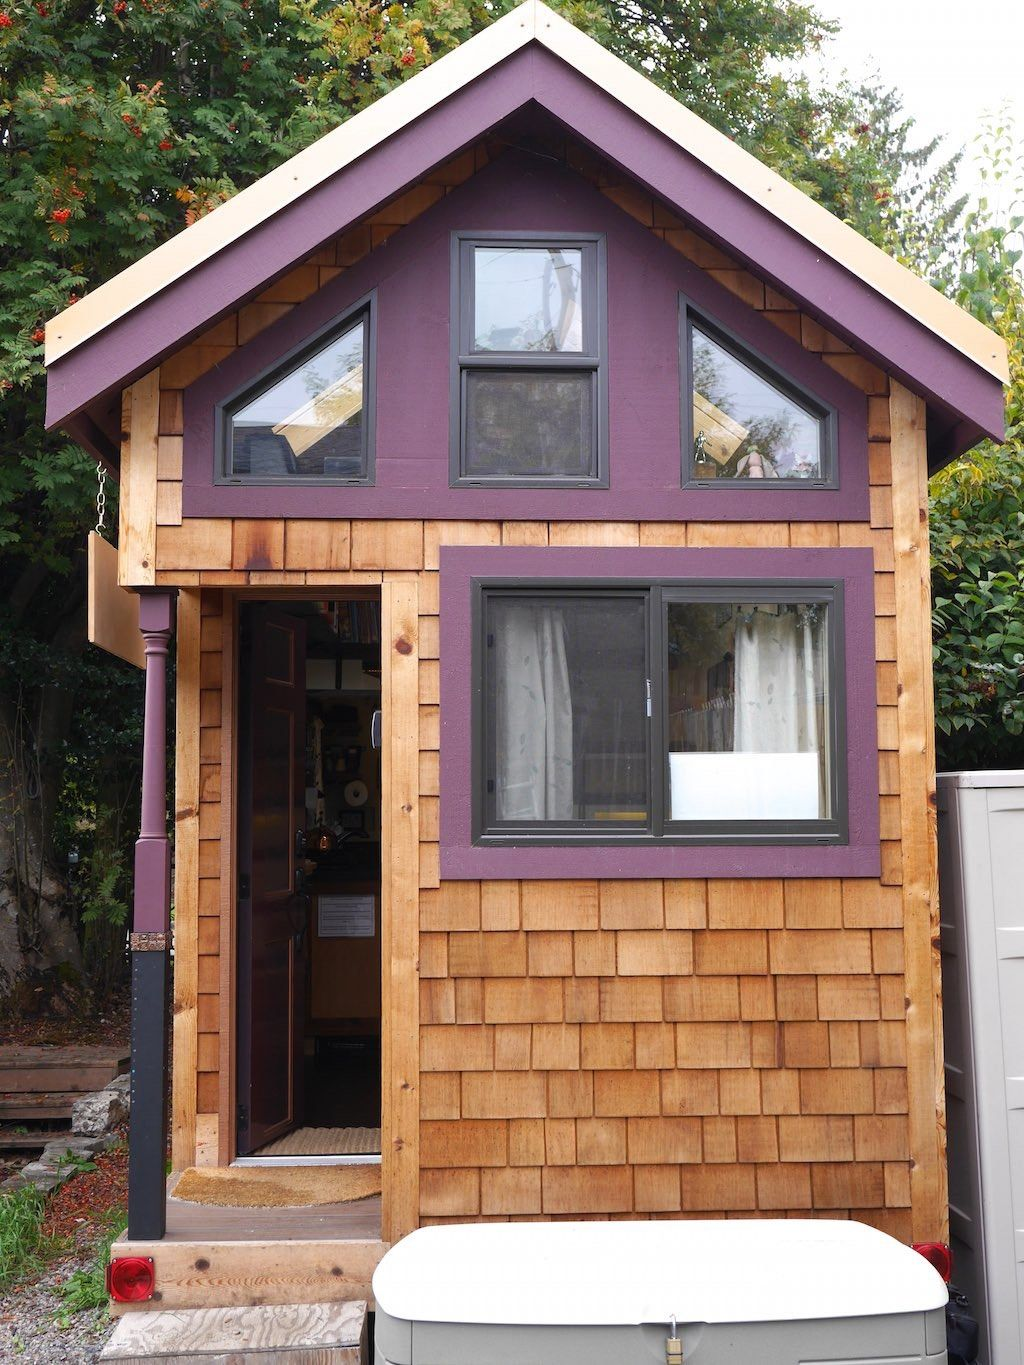 Tiny house mansion 106 decoratoo for Tiny house mansion